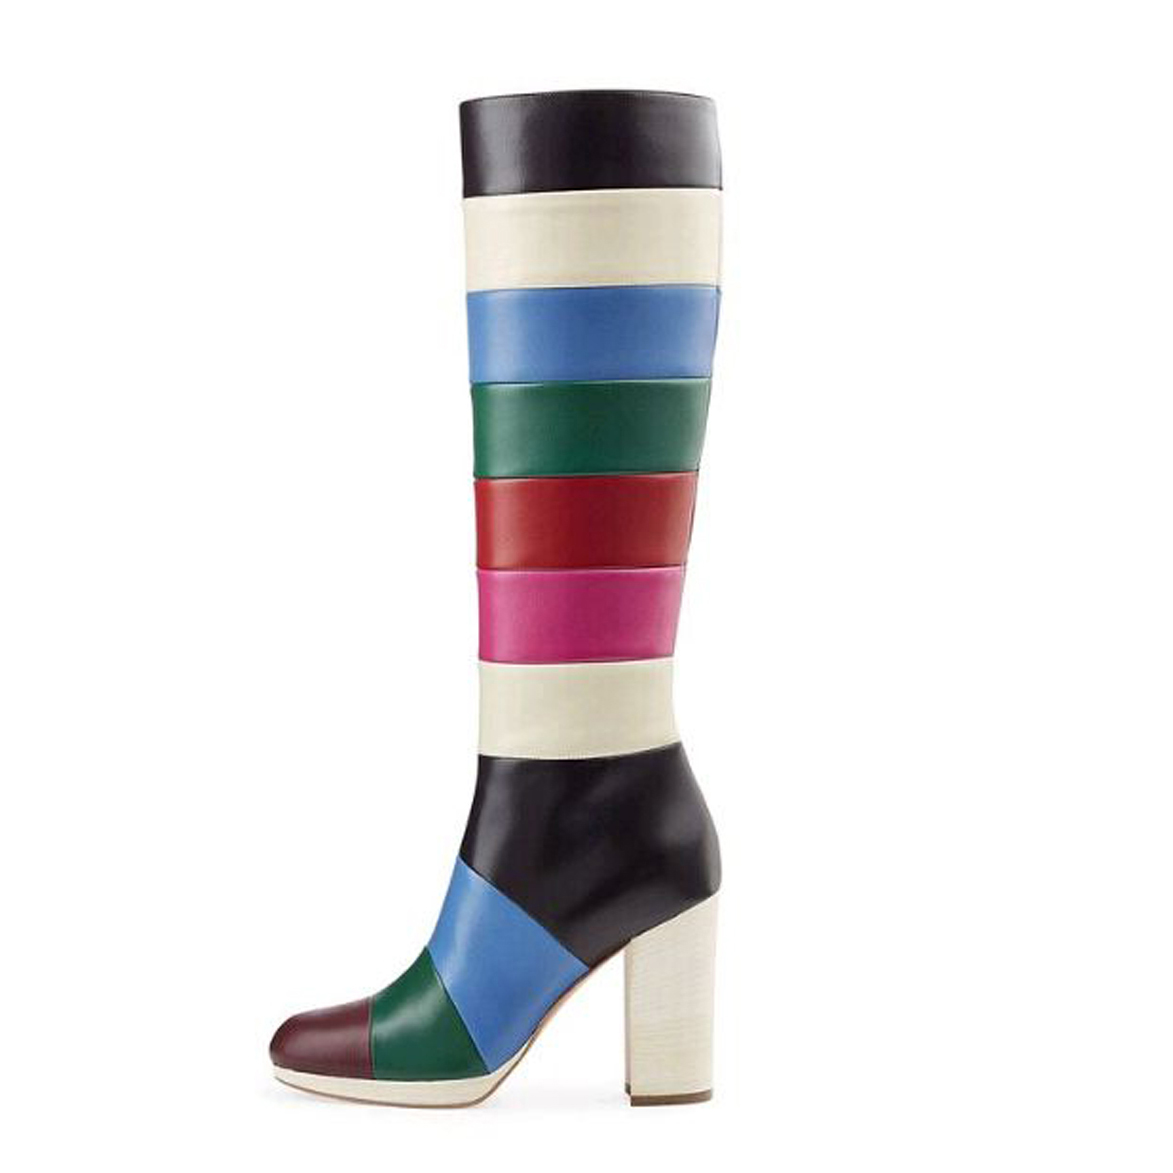 870aabf81 US  108 - 2018 winter fashion rainbow under knee high boots chunky heels  striped boots cheap women s shoes - www.ardenfurtado.com